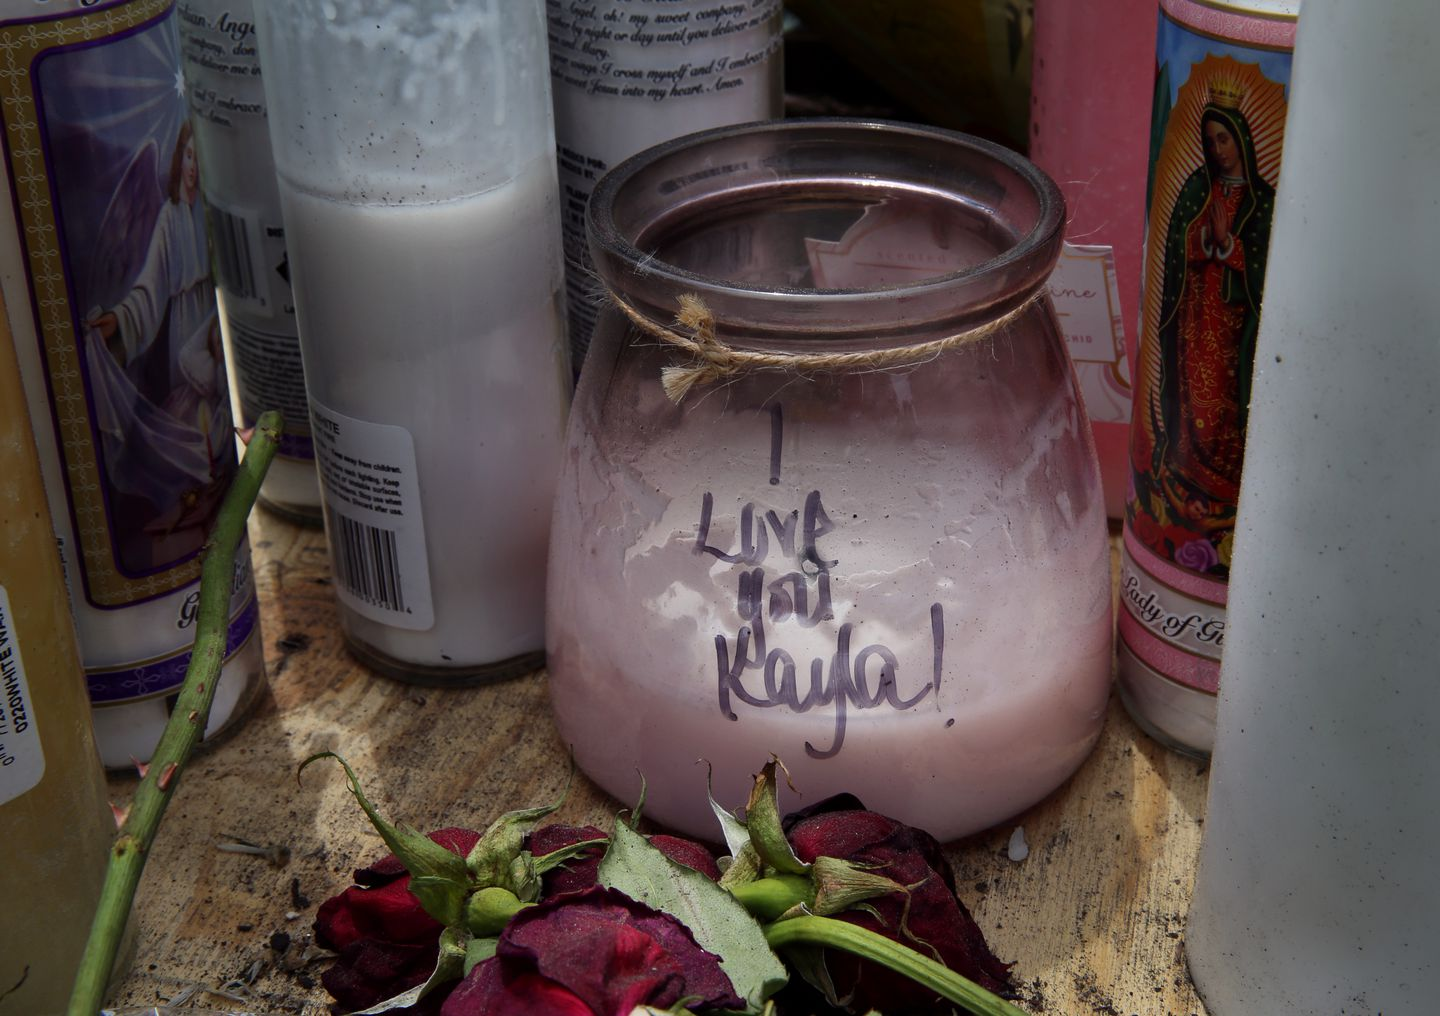 A makeshift memorial for the women found at Weldon's Springfield home.